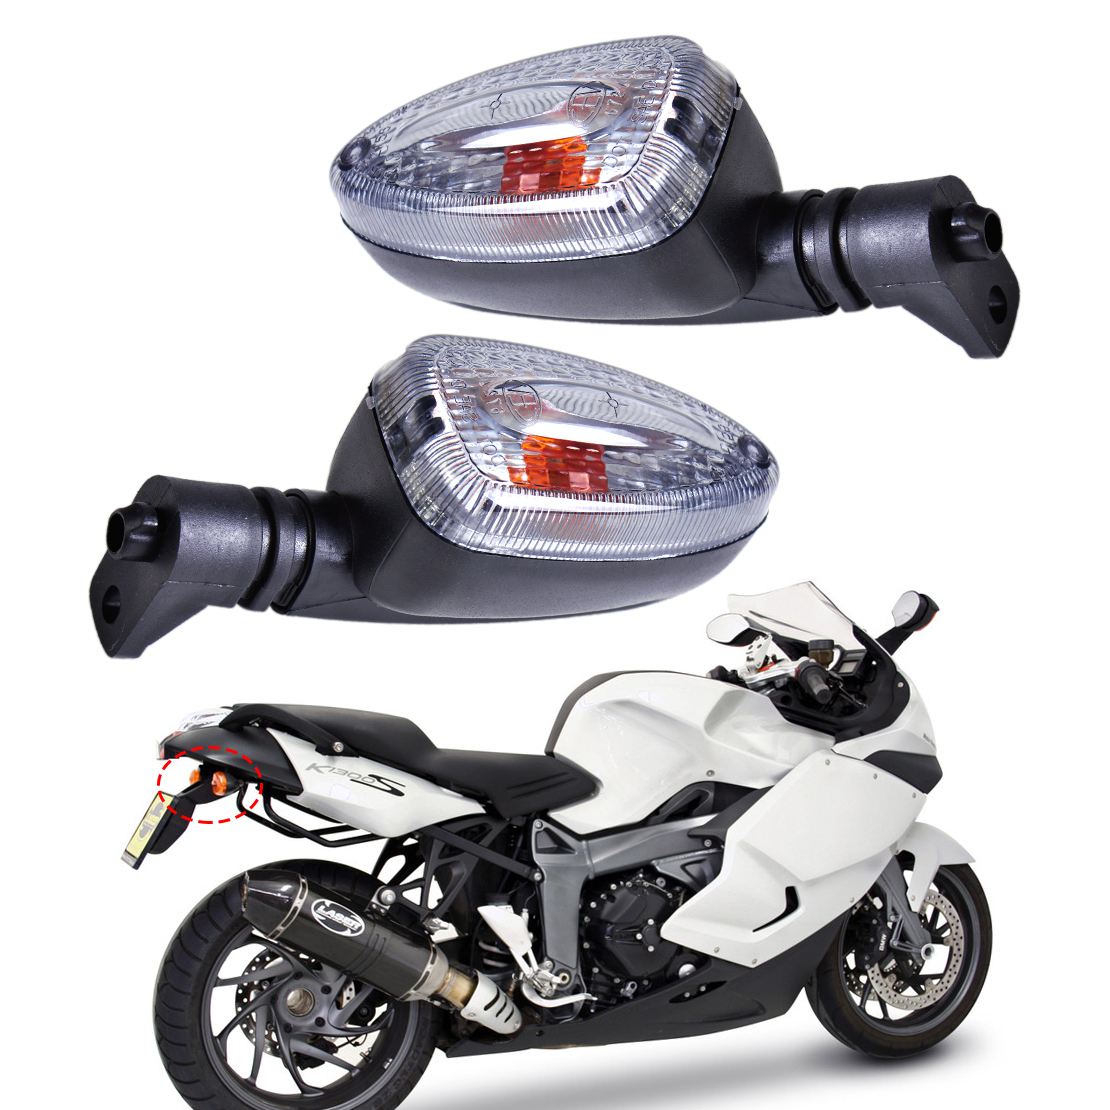 New 1Pair Motorcycle Clear Turn Signal Indicator Light font b Lamp b font Fit for BMW